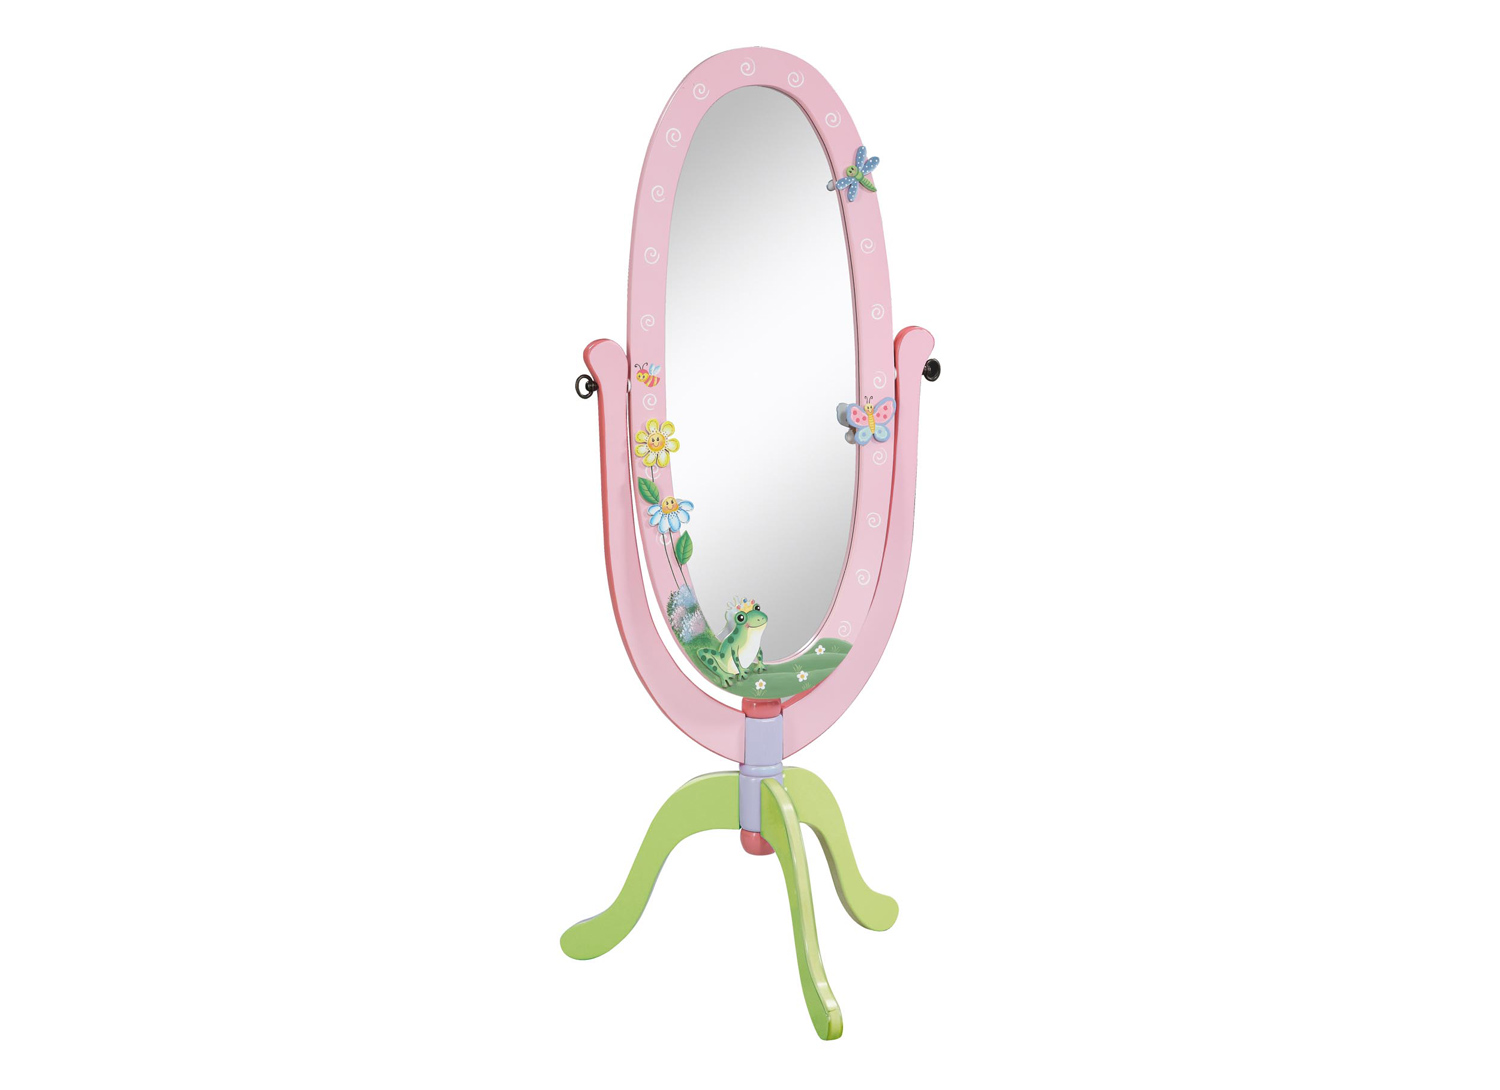 A truly adorable mirror to bring your child's bedroom to life with fun and magic.